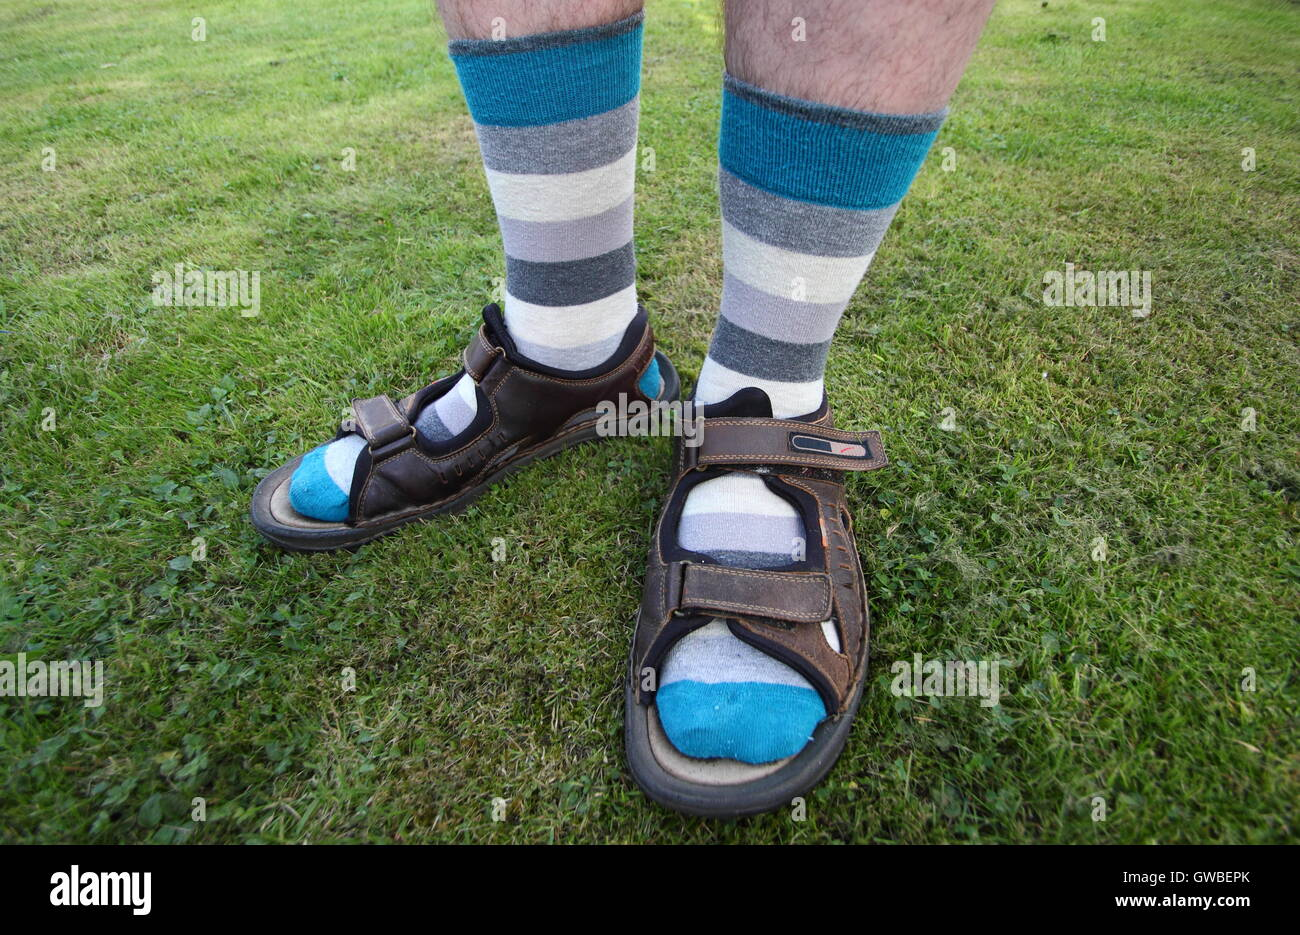 An English man wears socks with sandals during summer in a domestic garden setting, England UK MODEL RELEASED - Stock Image